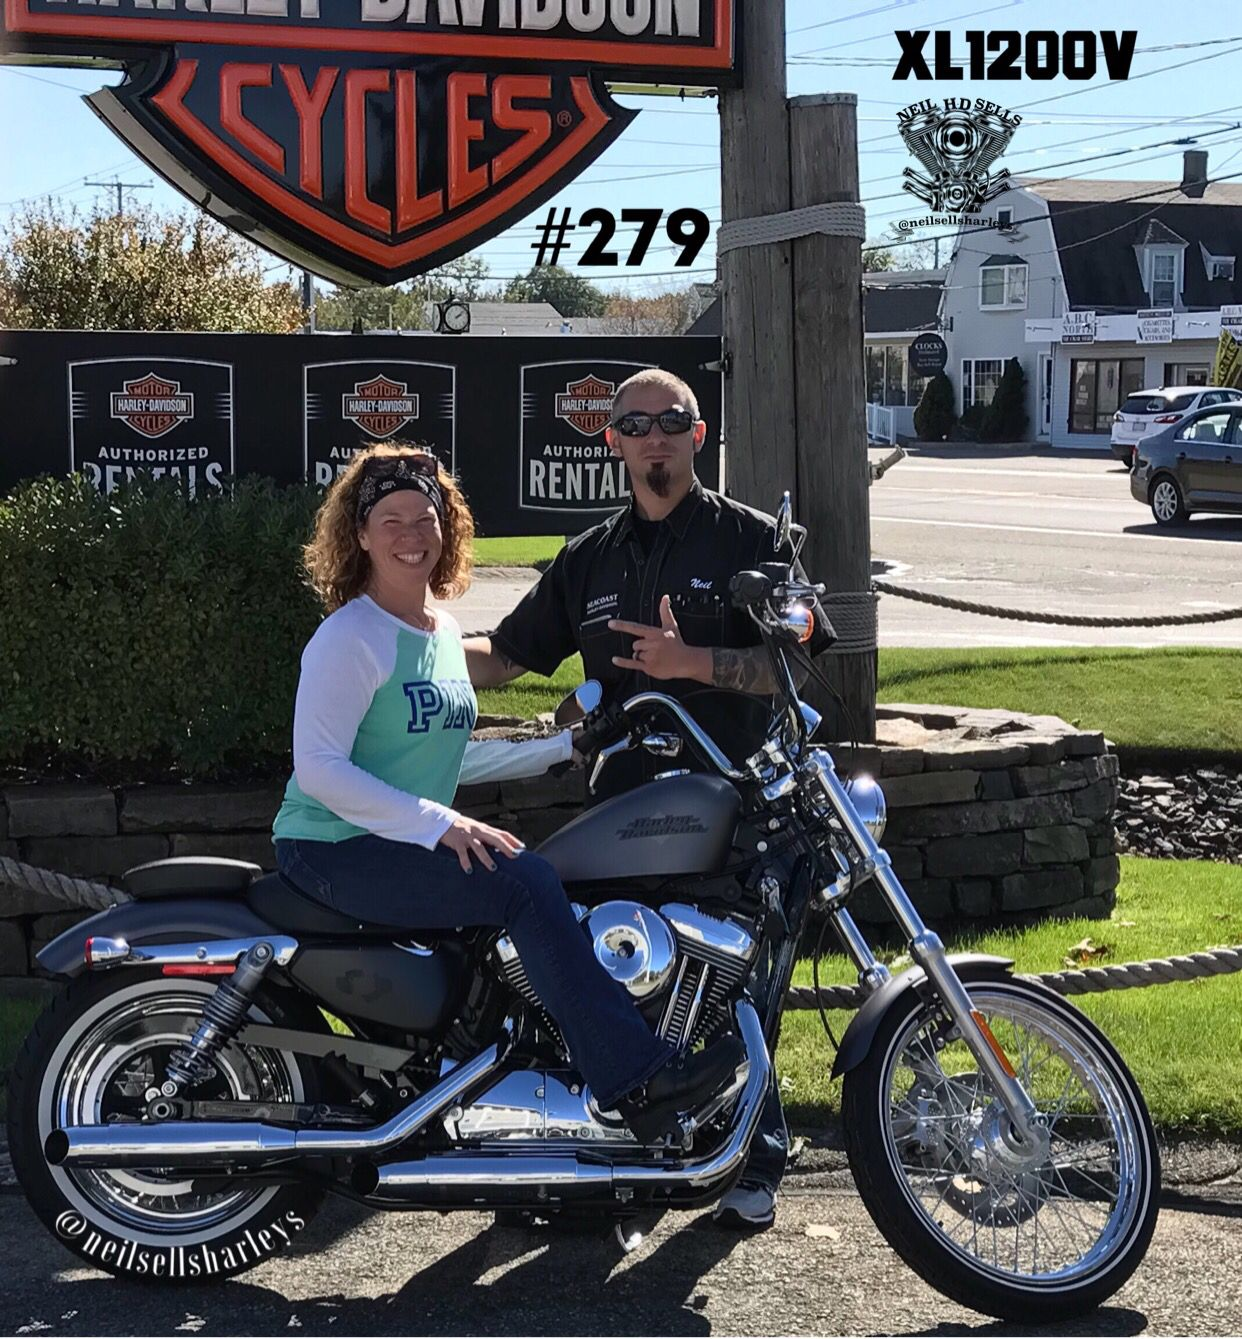 Graduate Riding Academy Get Your 1st Harley Awesome Job Risa Congrats On Your First H D Ride Safe And Welcome To The Seac Sporty Harley Seacoast